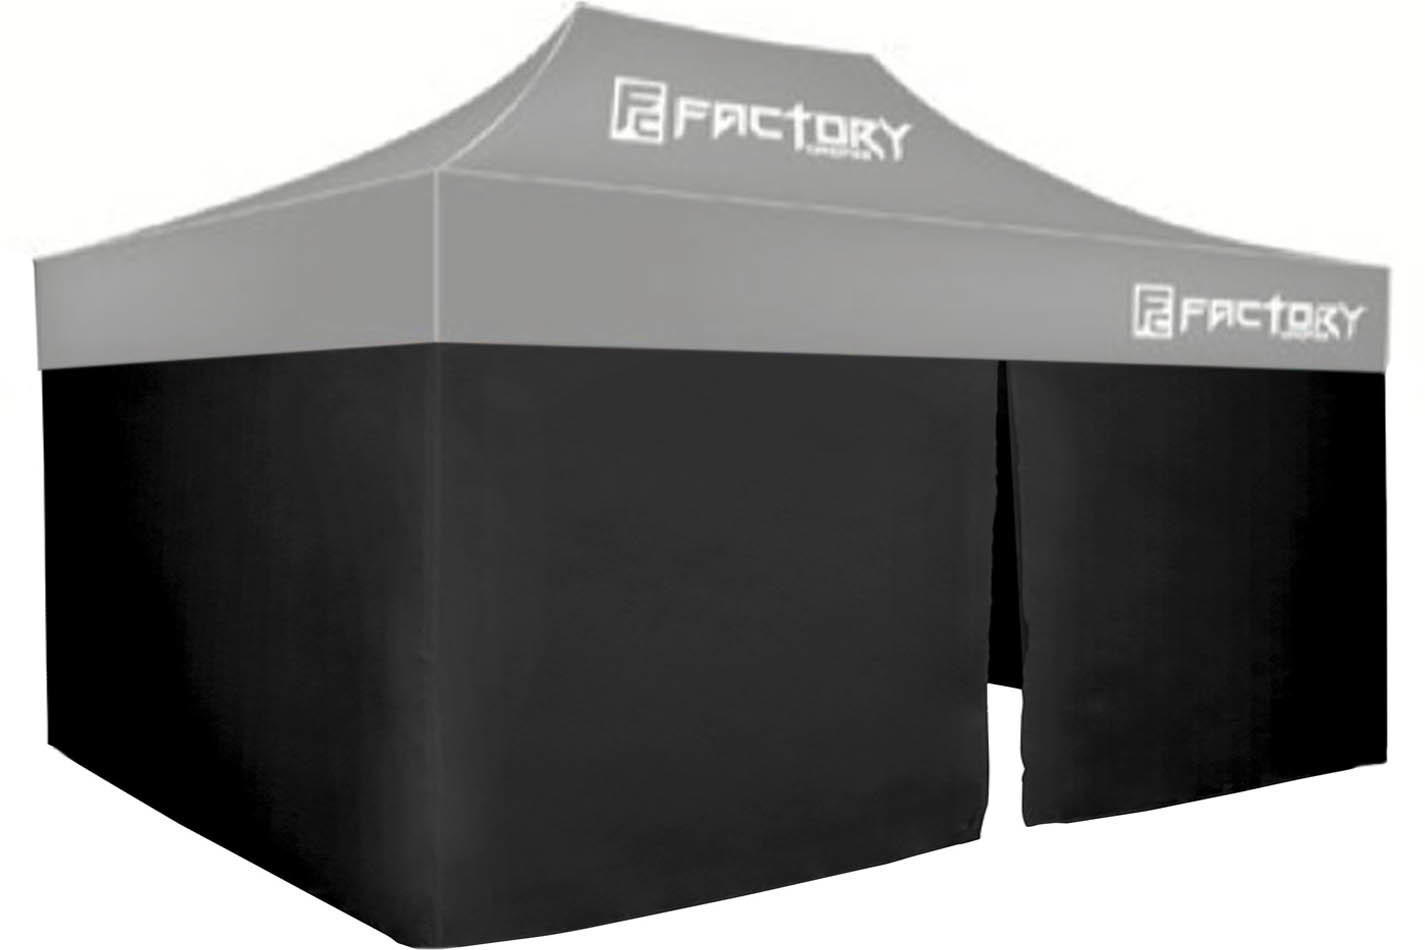 Factory Canopies 41001-KIT Canopy Wall, 3 sides, 10 x 15 ft Canopy, Fire / Water Resistant Fabric, Black, Kit